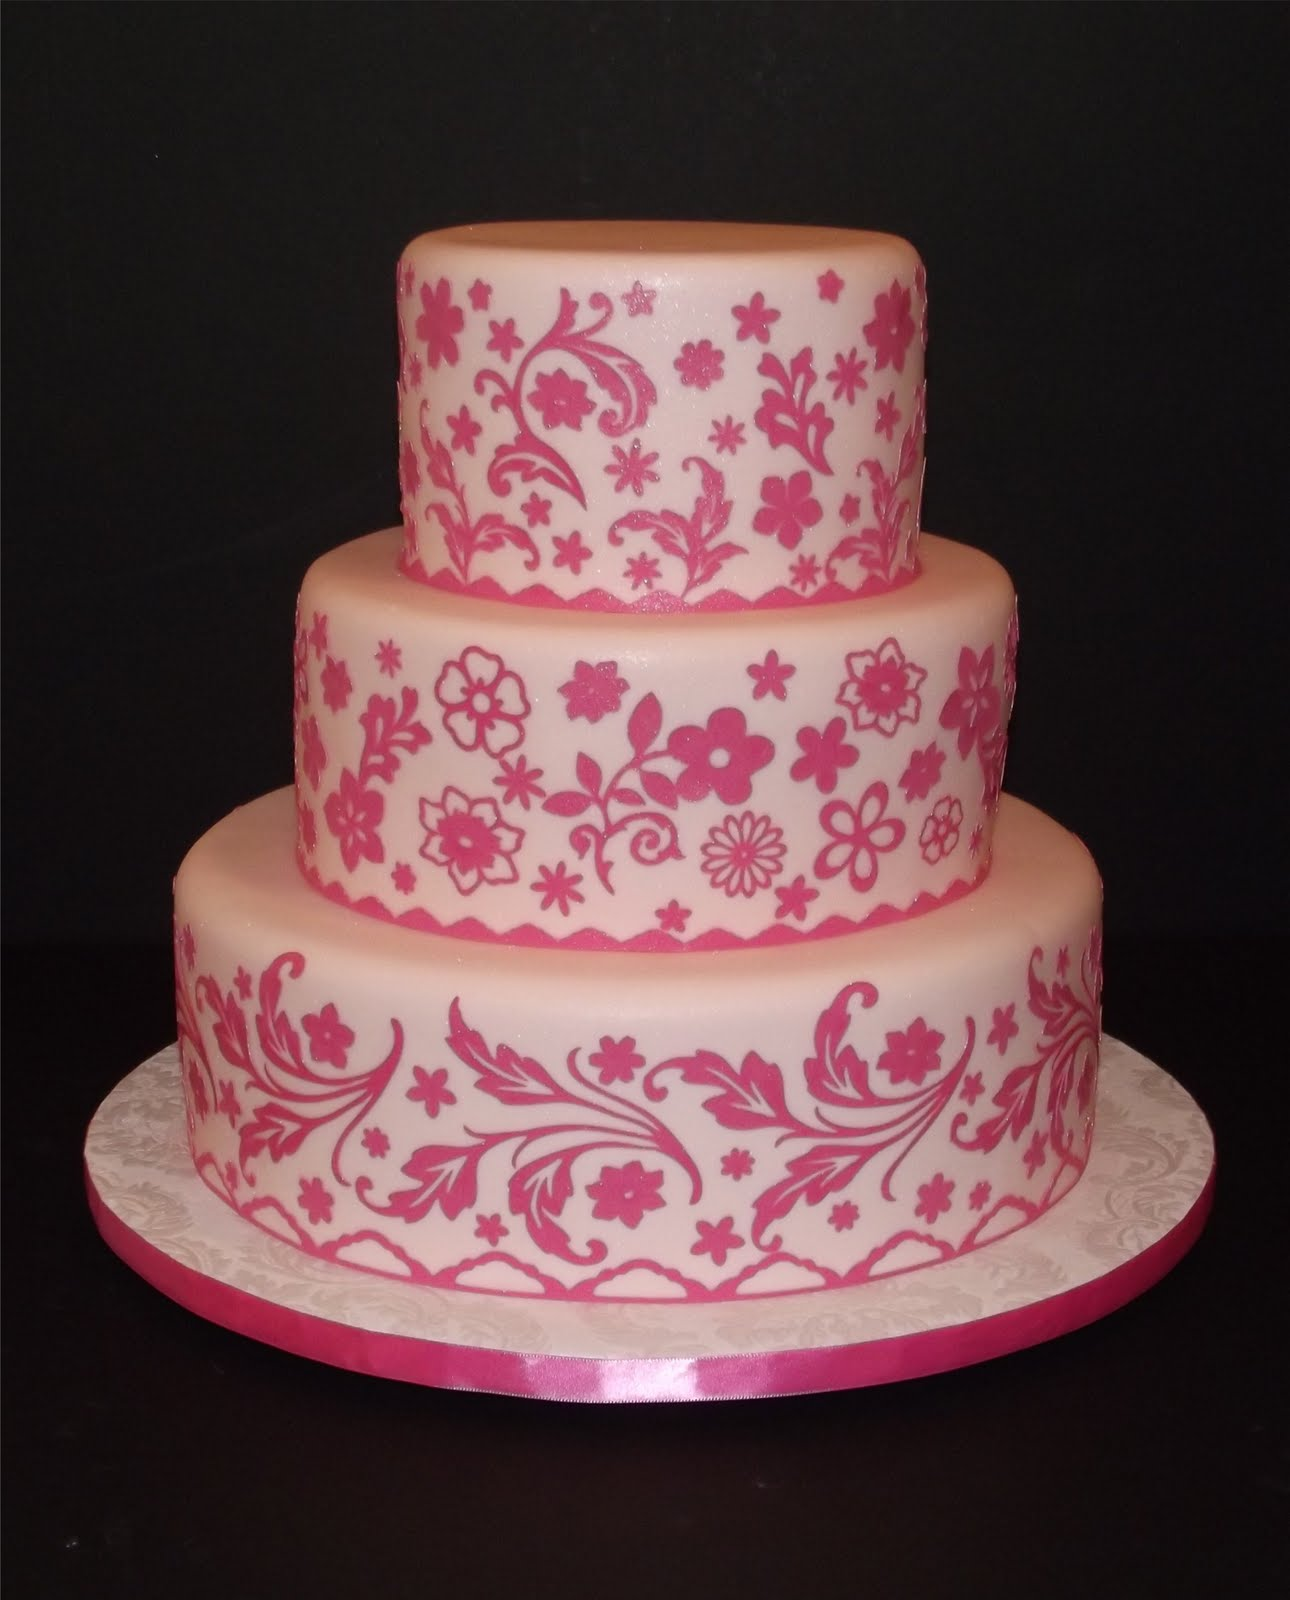 Creative Designs For Cakes: Silhouette Cake + Icing Images ...